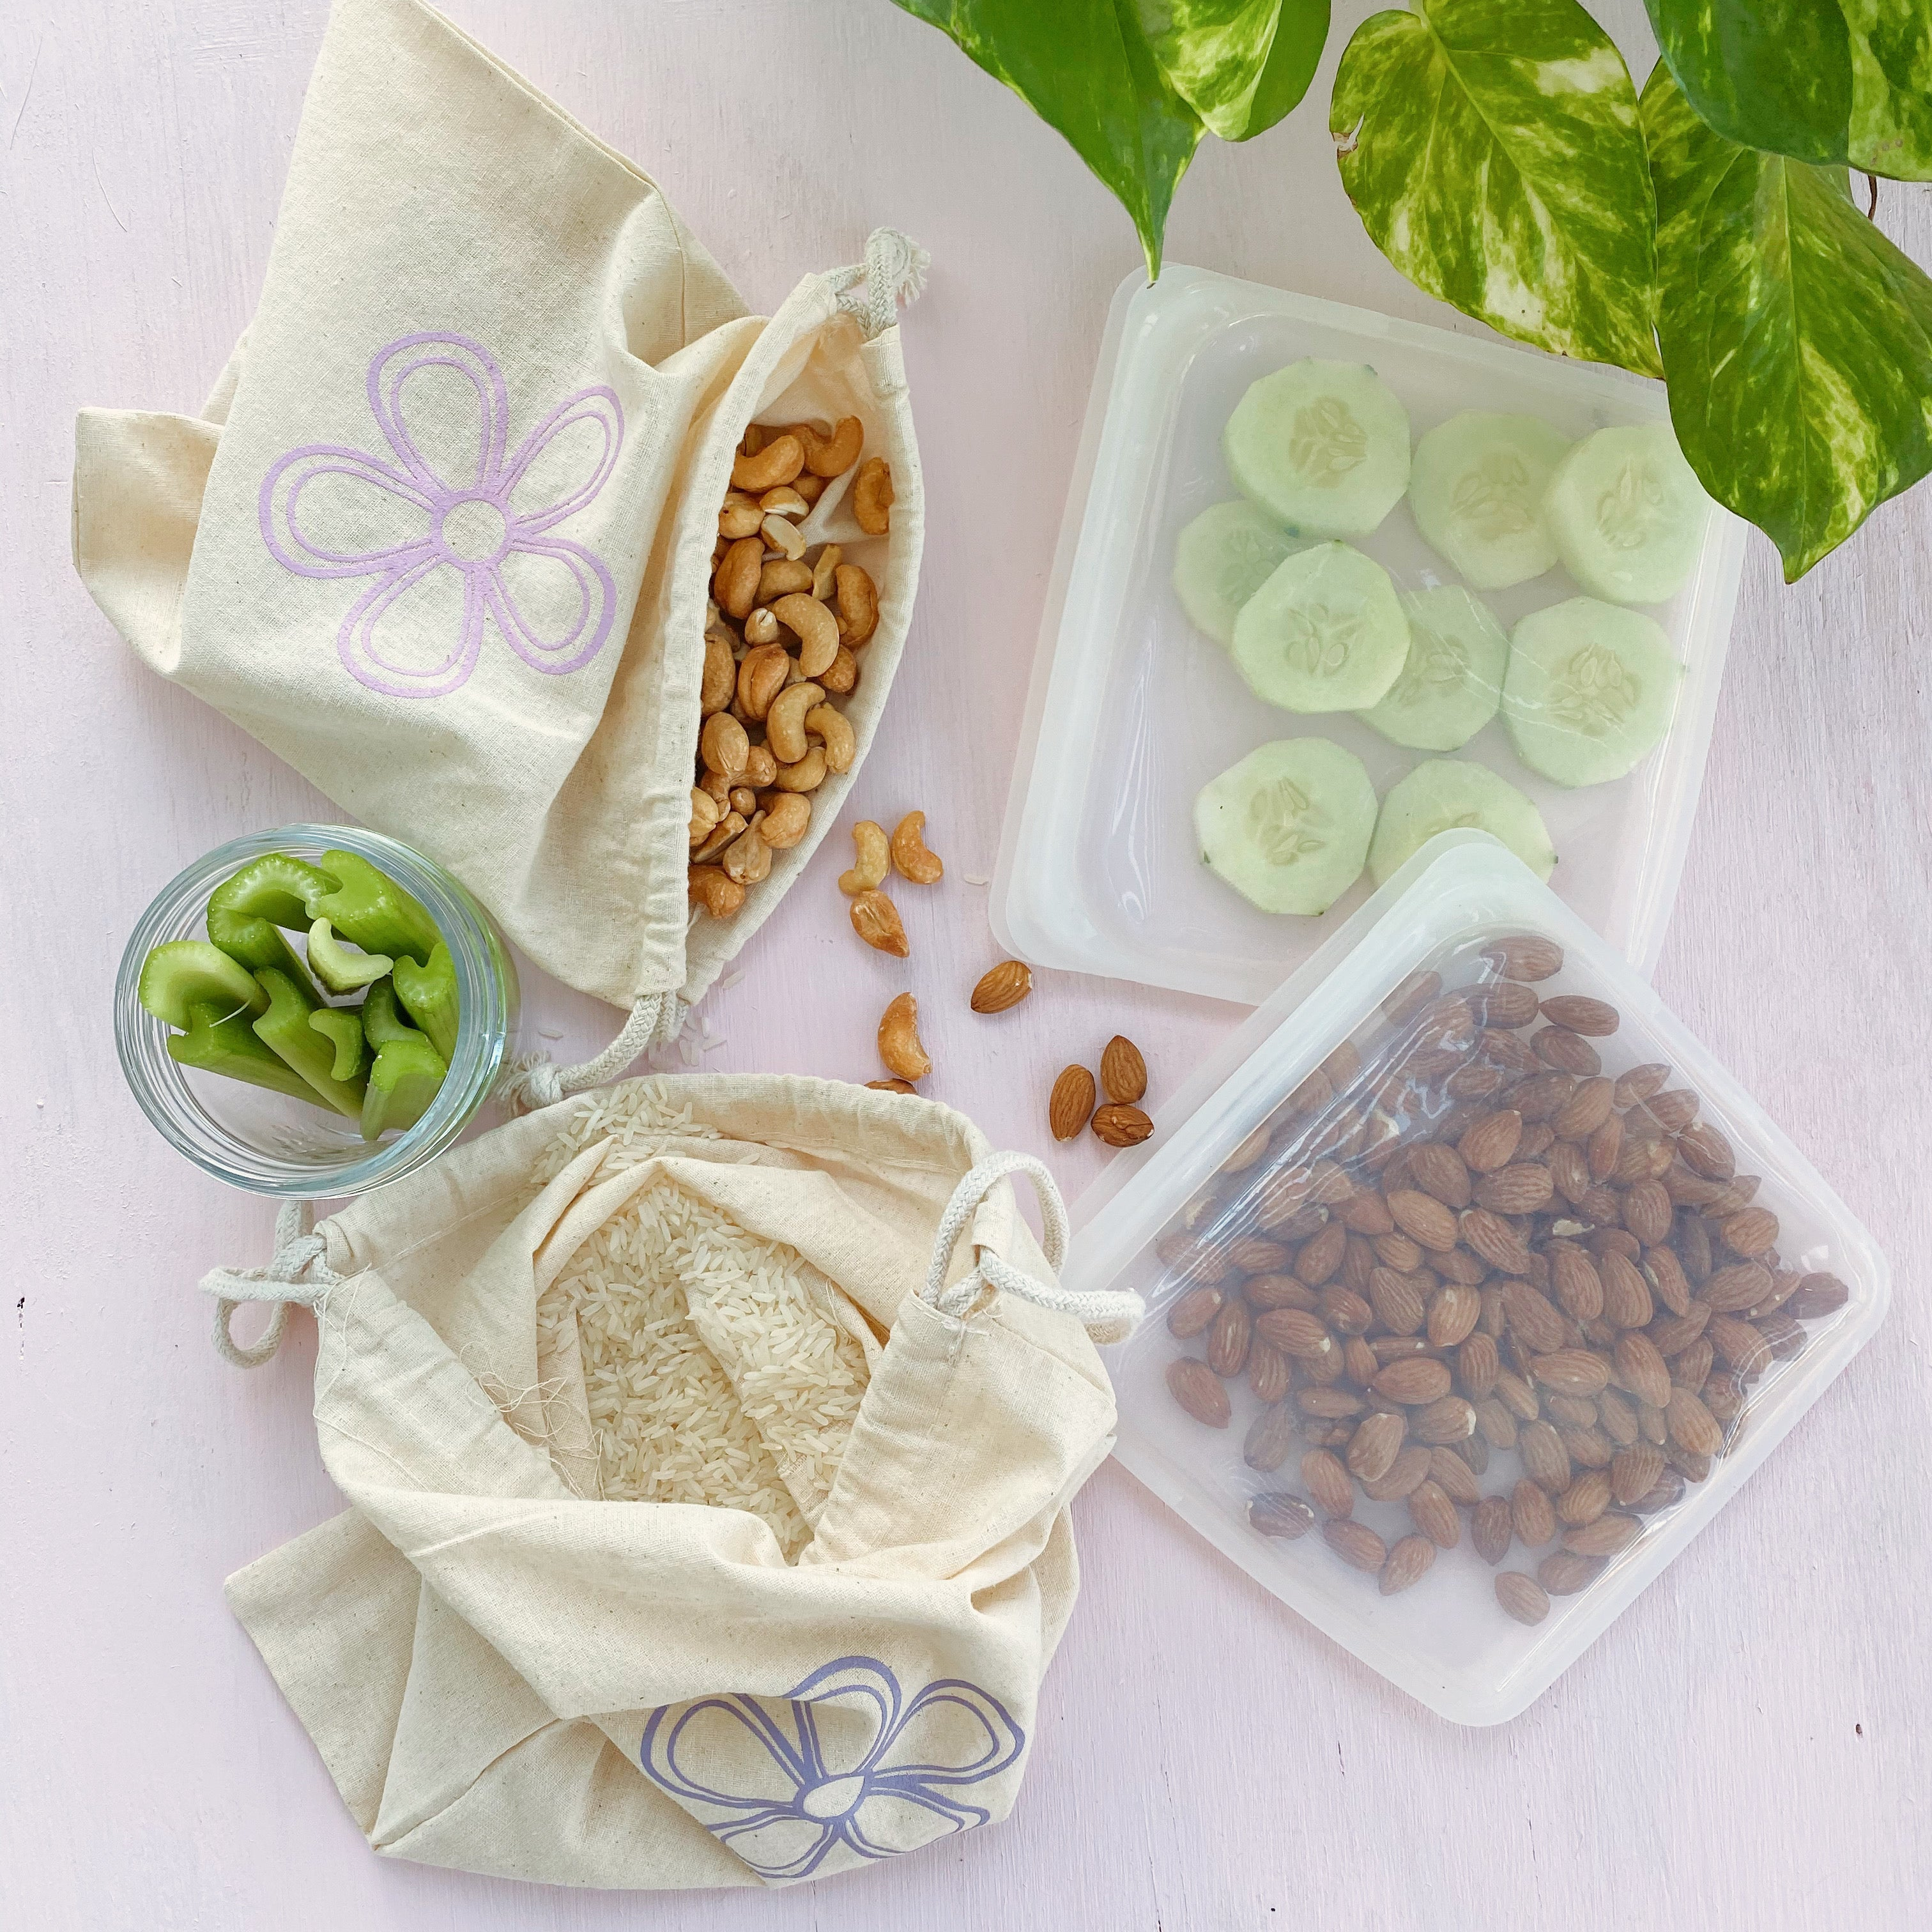 Silicone Storage Bags (Set of 2 Bags)